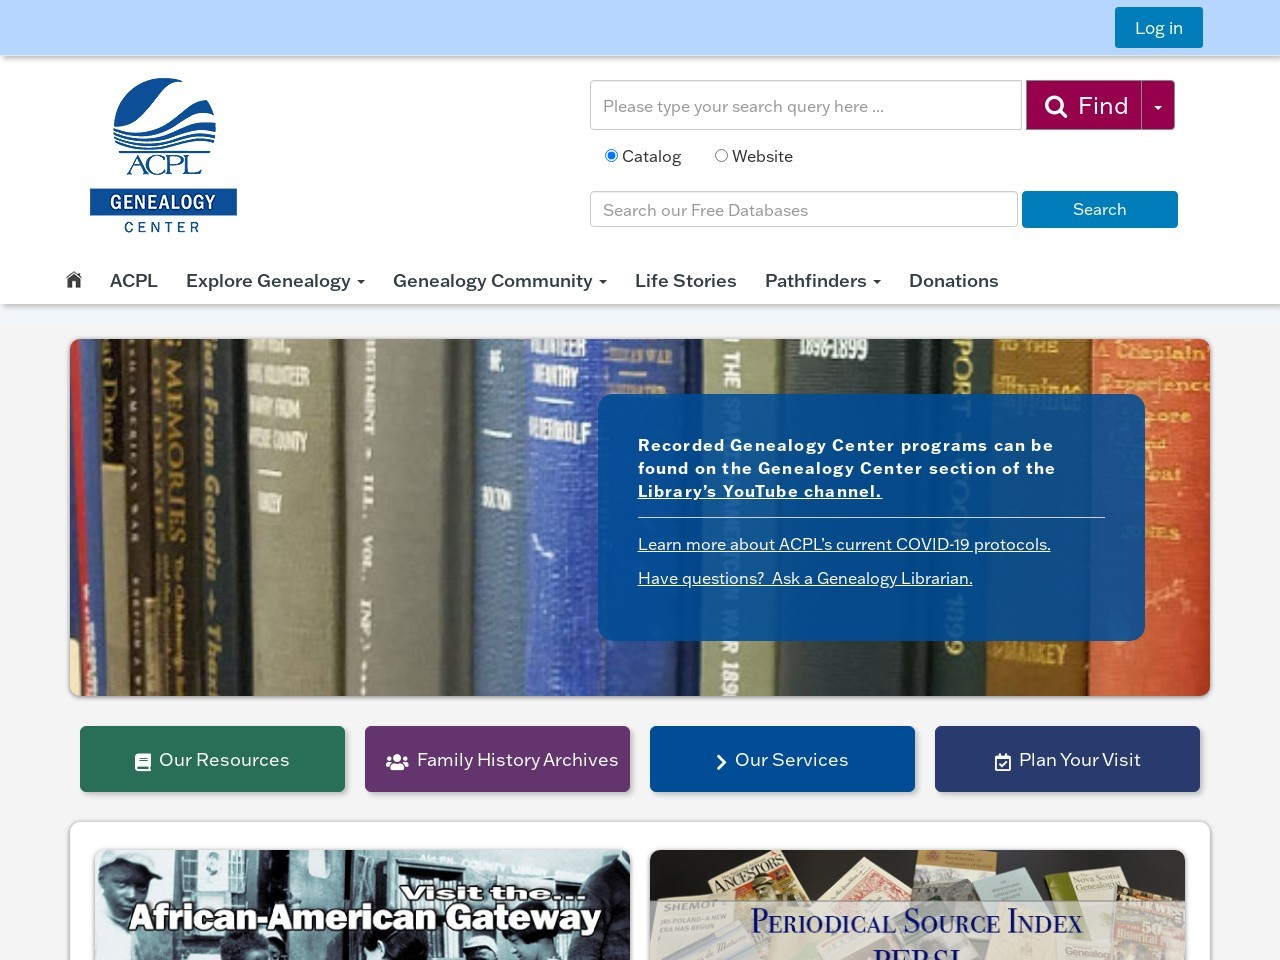 genealogycenter.org